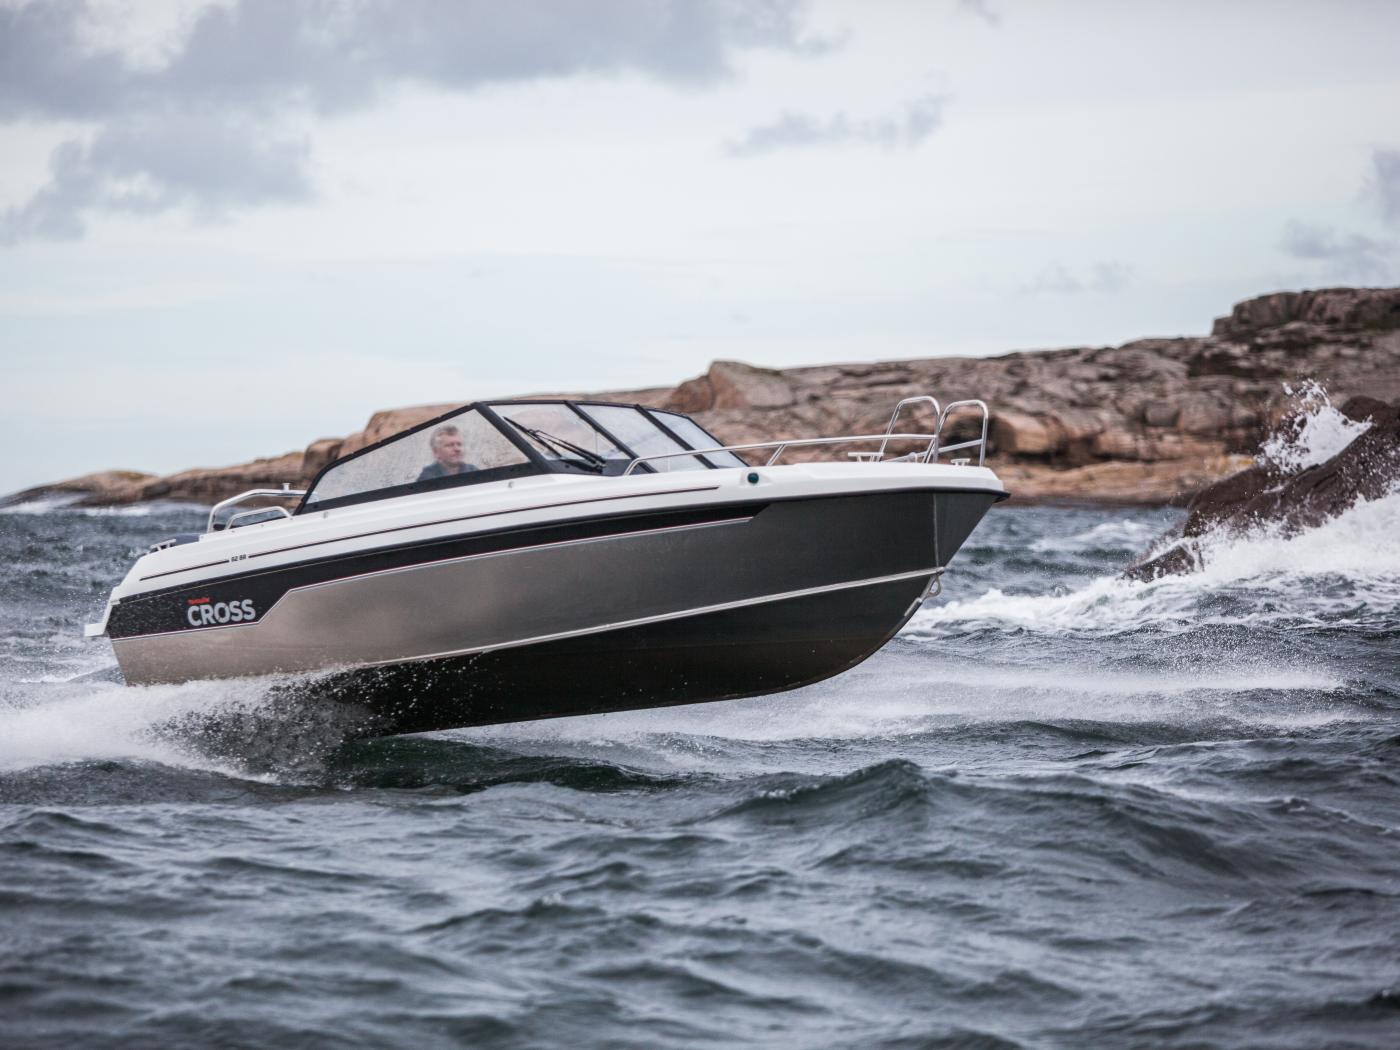 Aluminium Yamarin Cross 62 BR sporty all-round boat